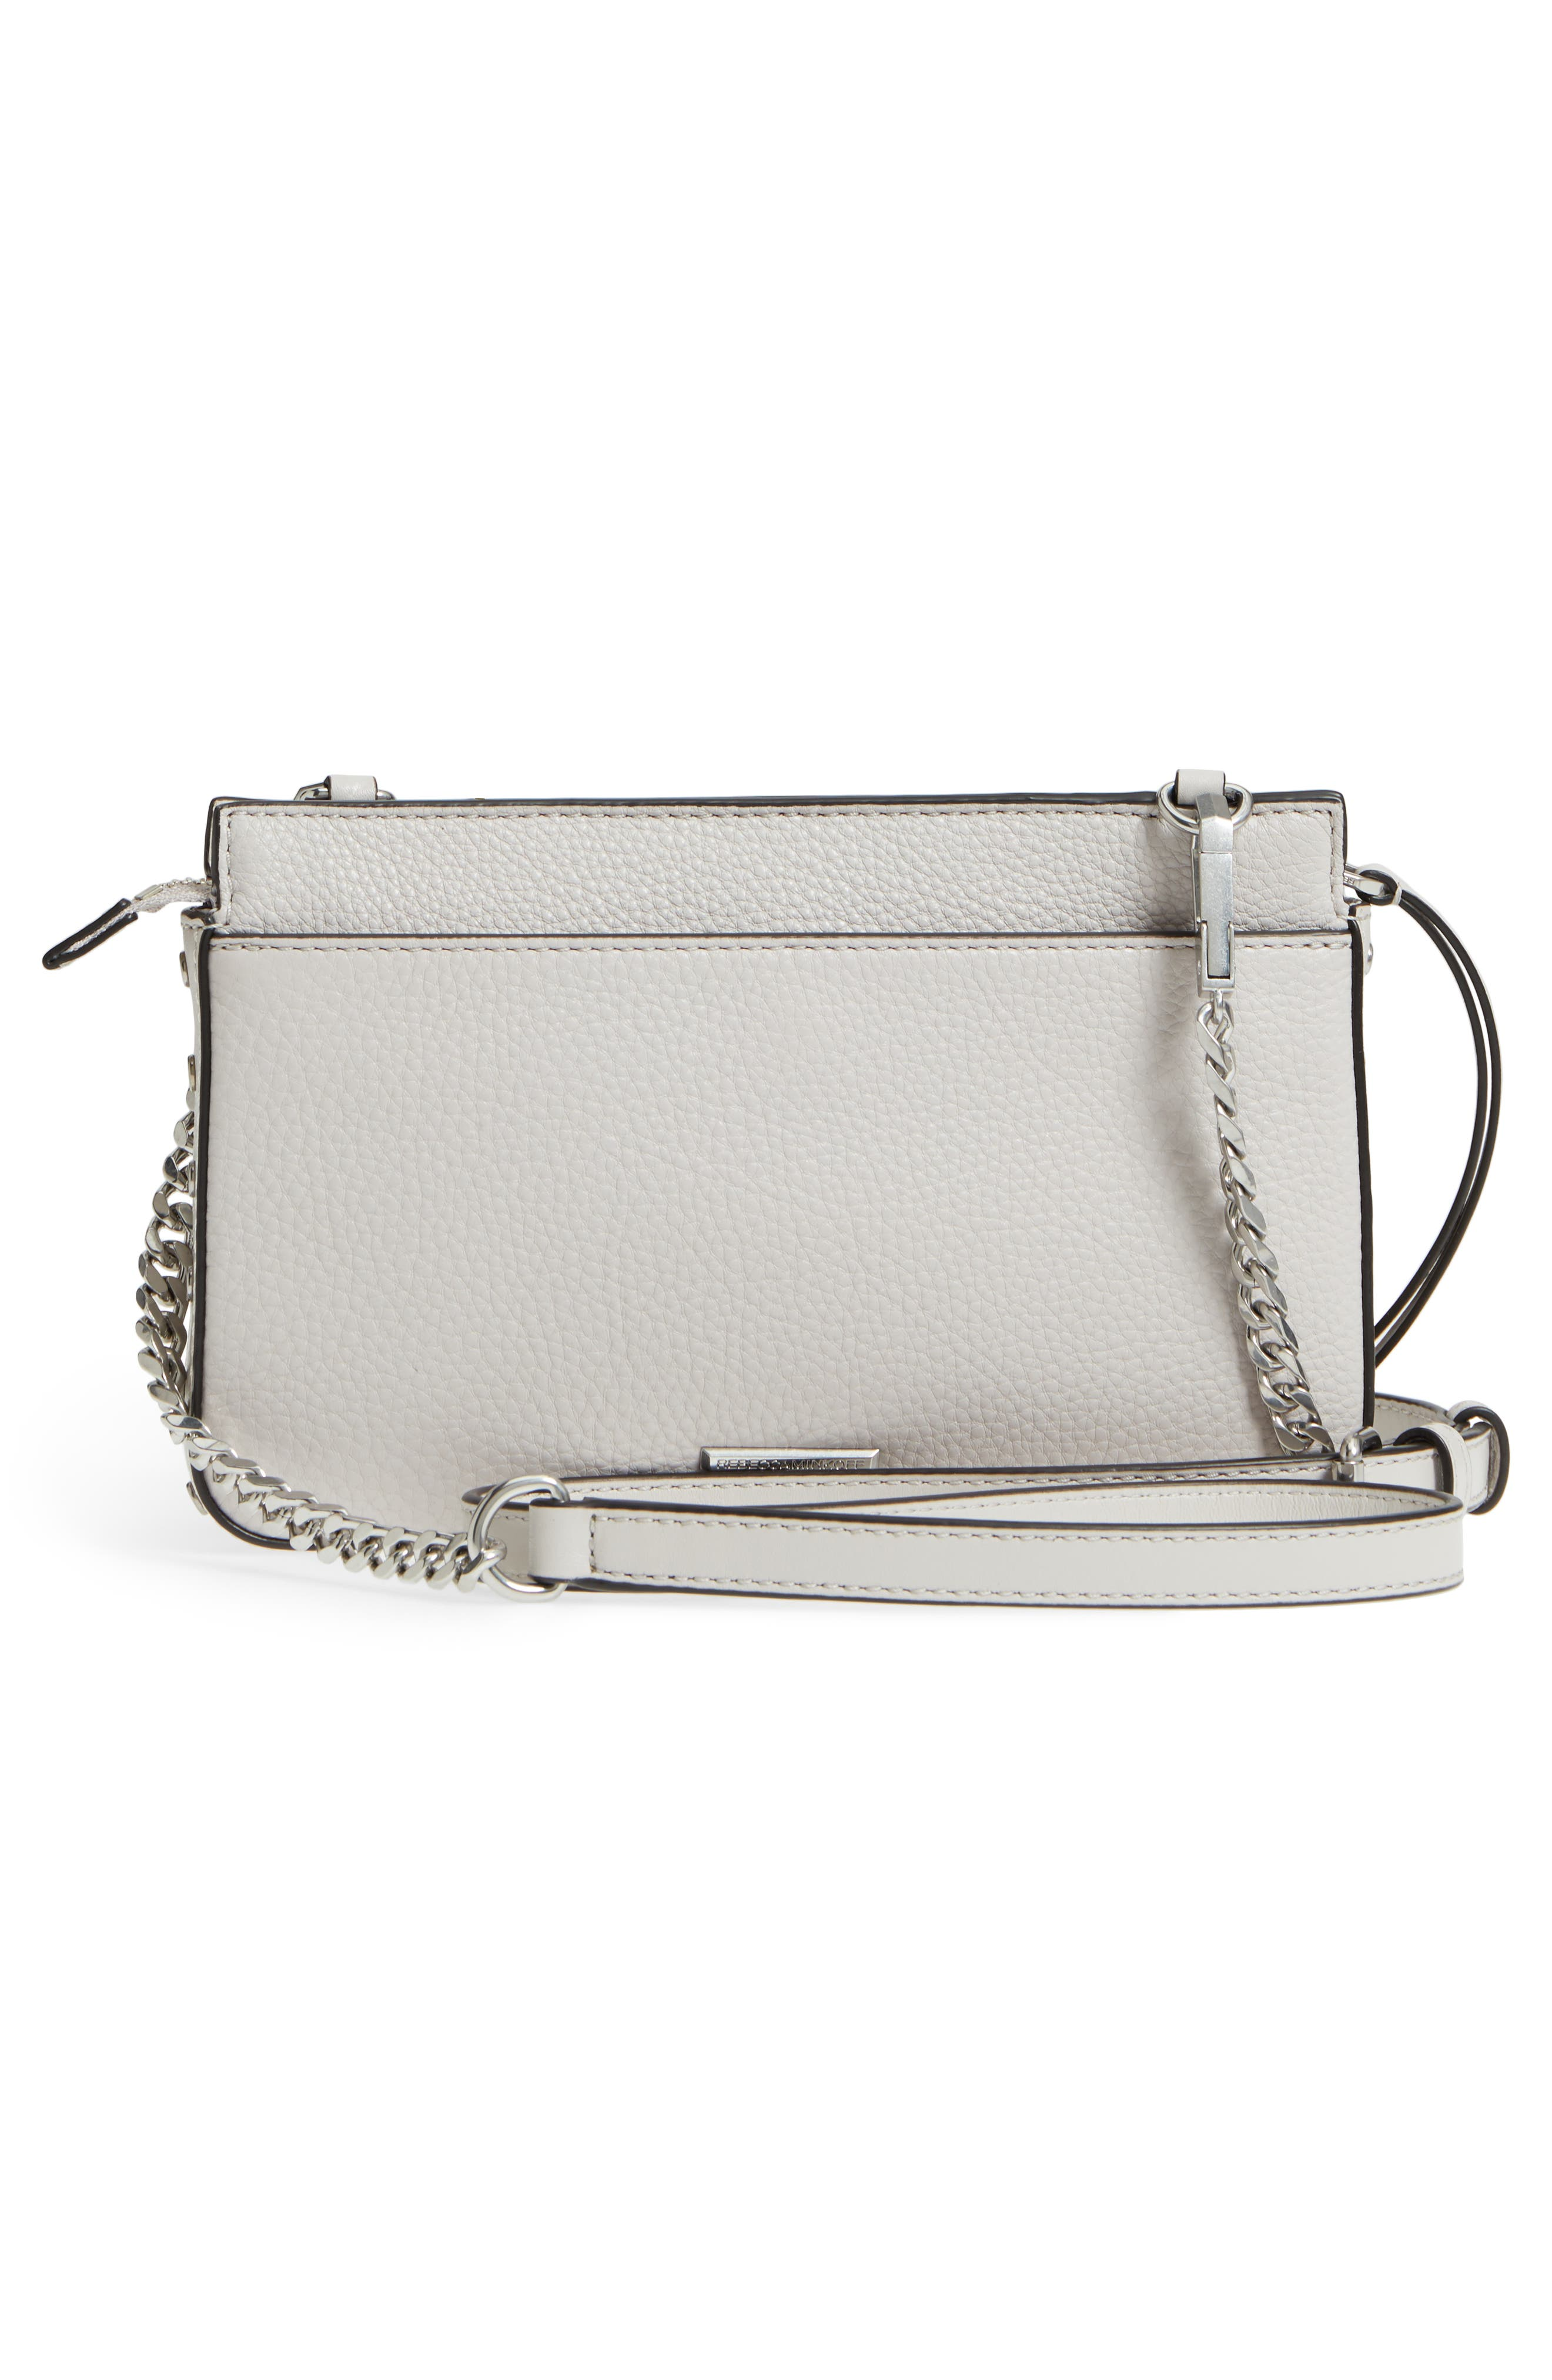 Small Bree Leather Crossbody Bag,                             Alternate thumbnail 6, color,